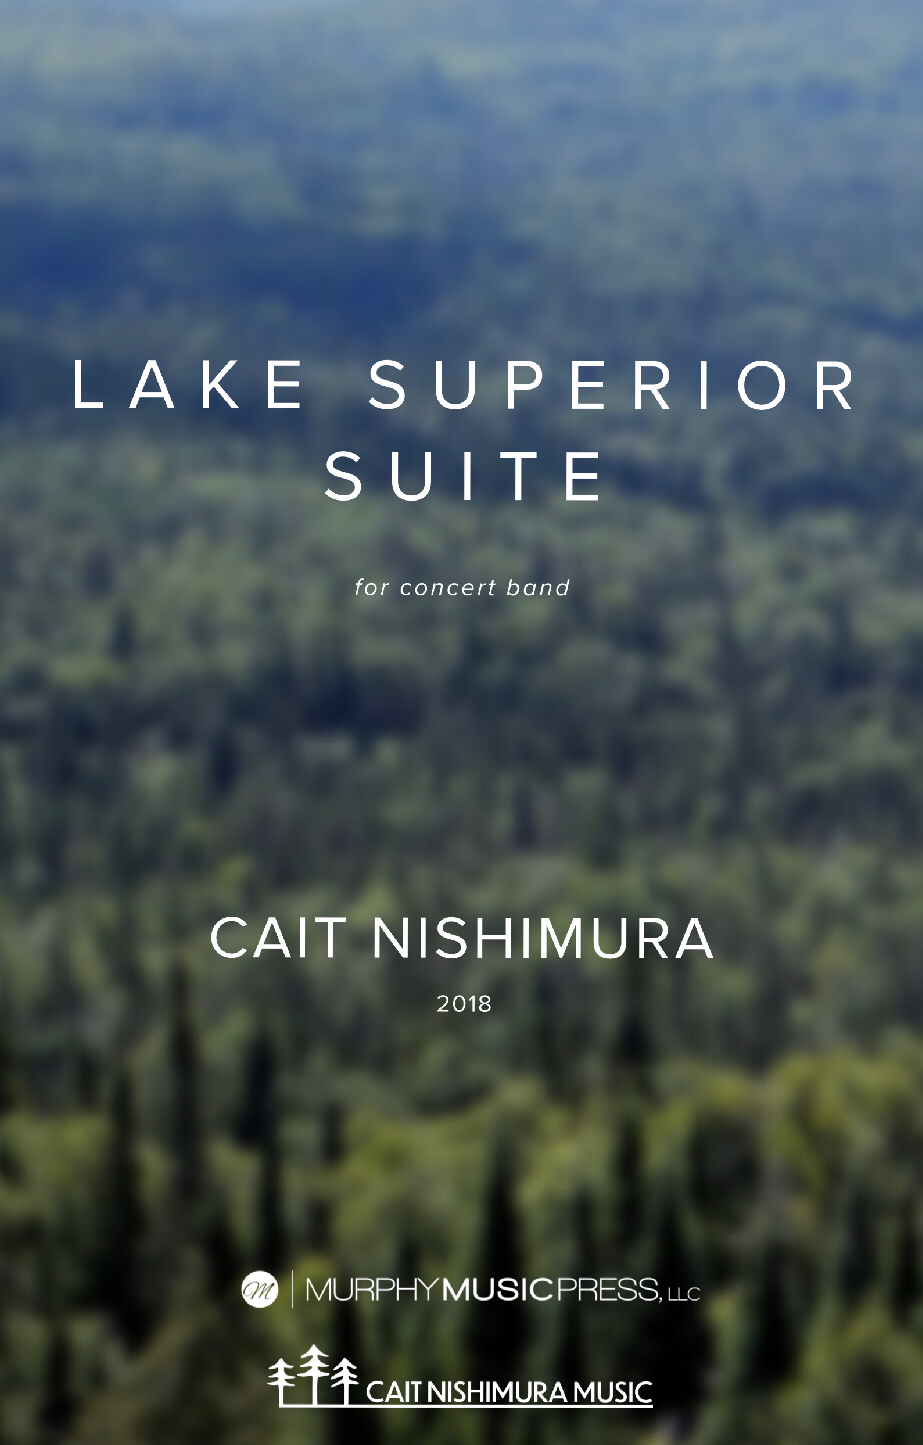 Lake Superior Suite by Cait Nishimura